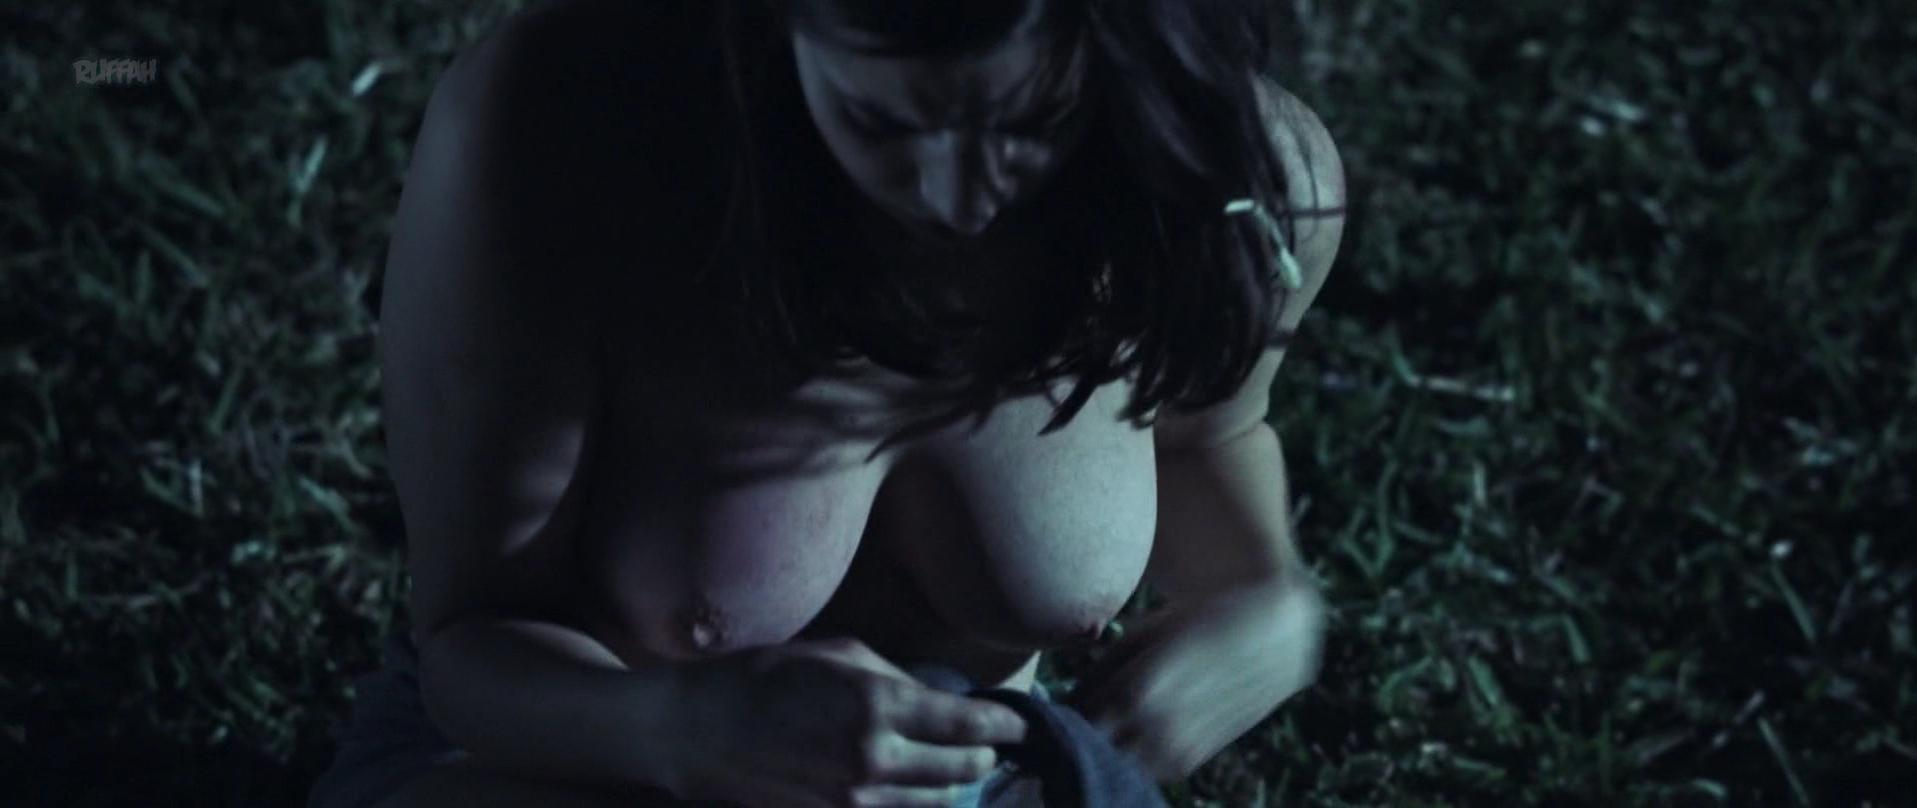 Jemma Dallender nude, Rachel Rosenstein nude, Anna Shields nude - The Executioners (2017)